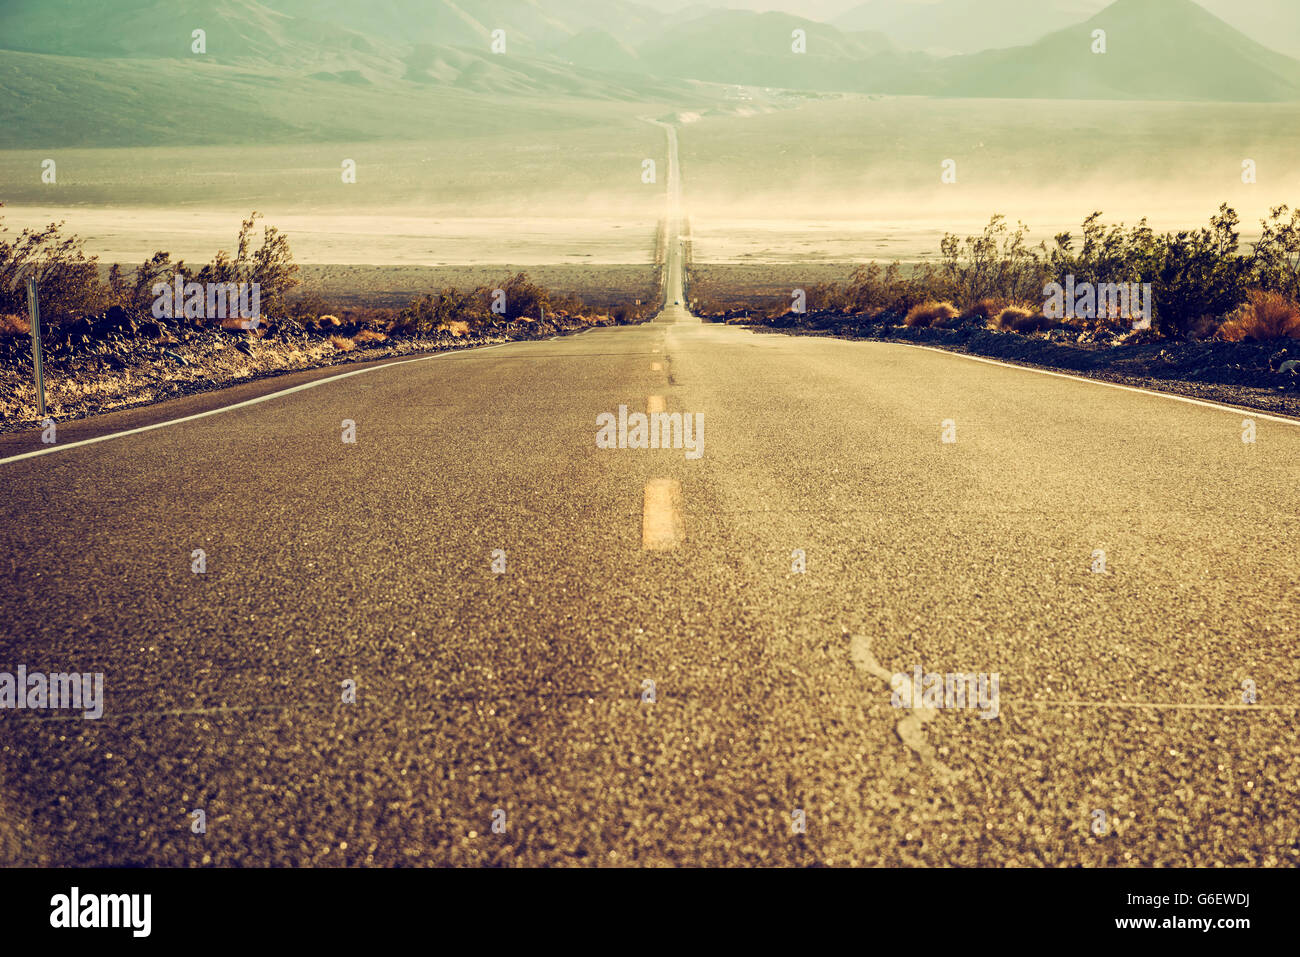 desert road in Death Valley, California, USA - Stock Image